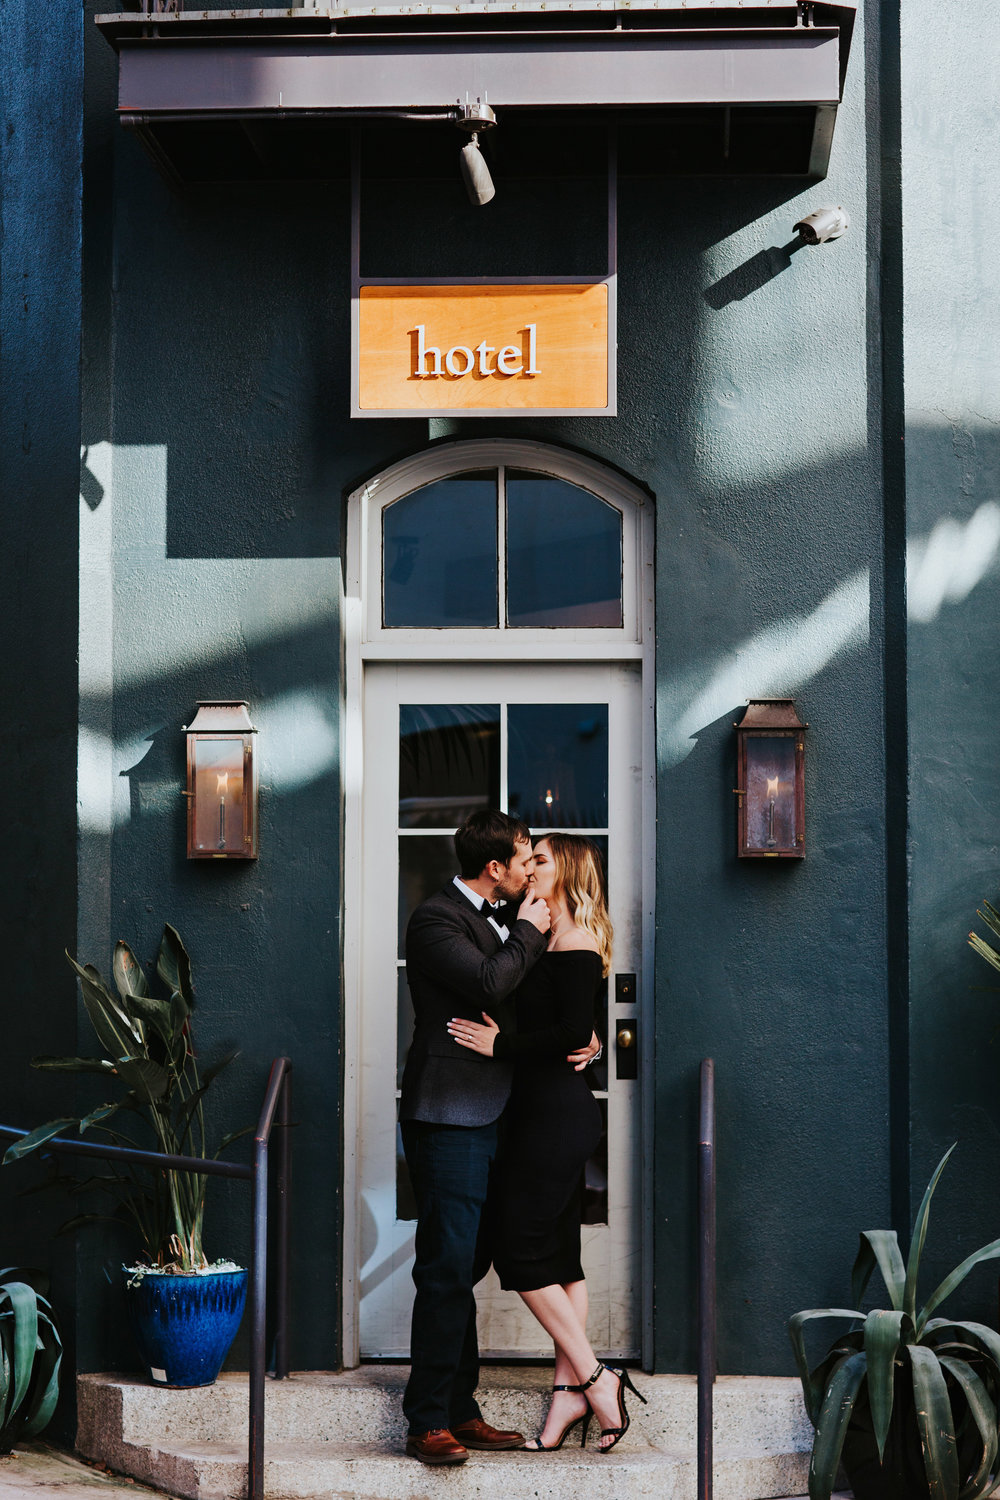 Catahoula Hotel Engagement Session New Orleans Wedding Photographer30.jpg